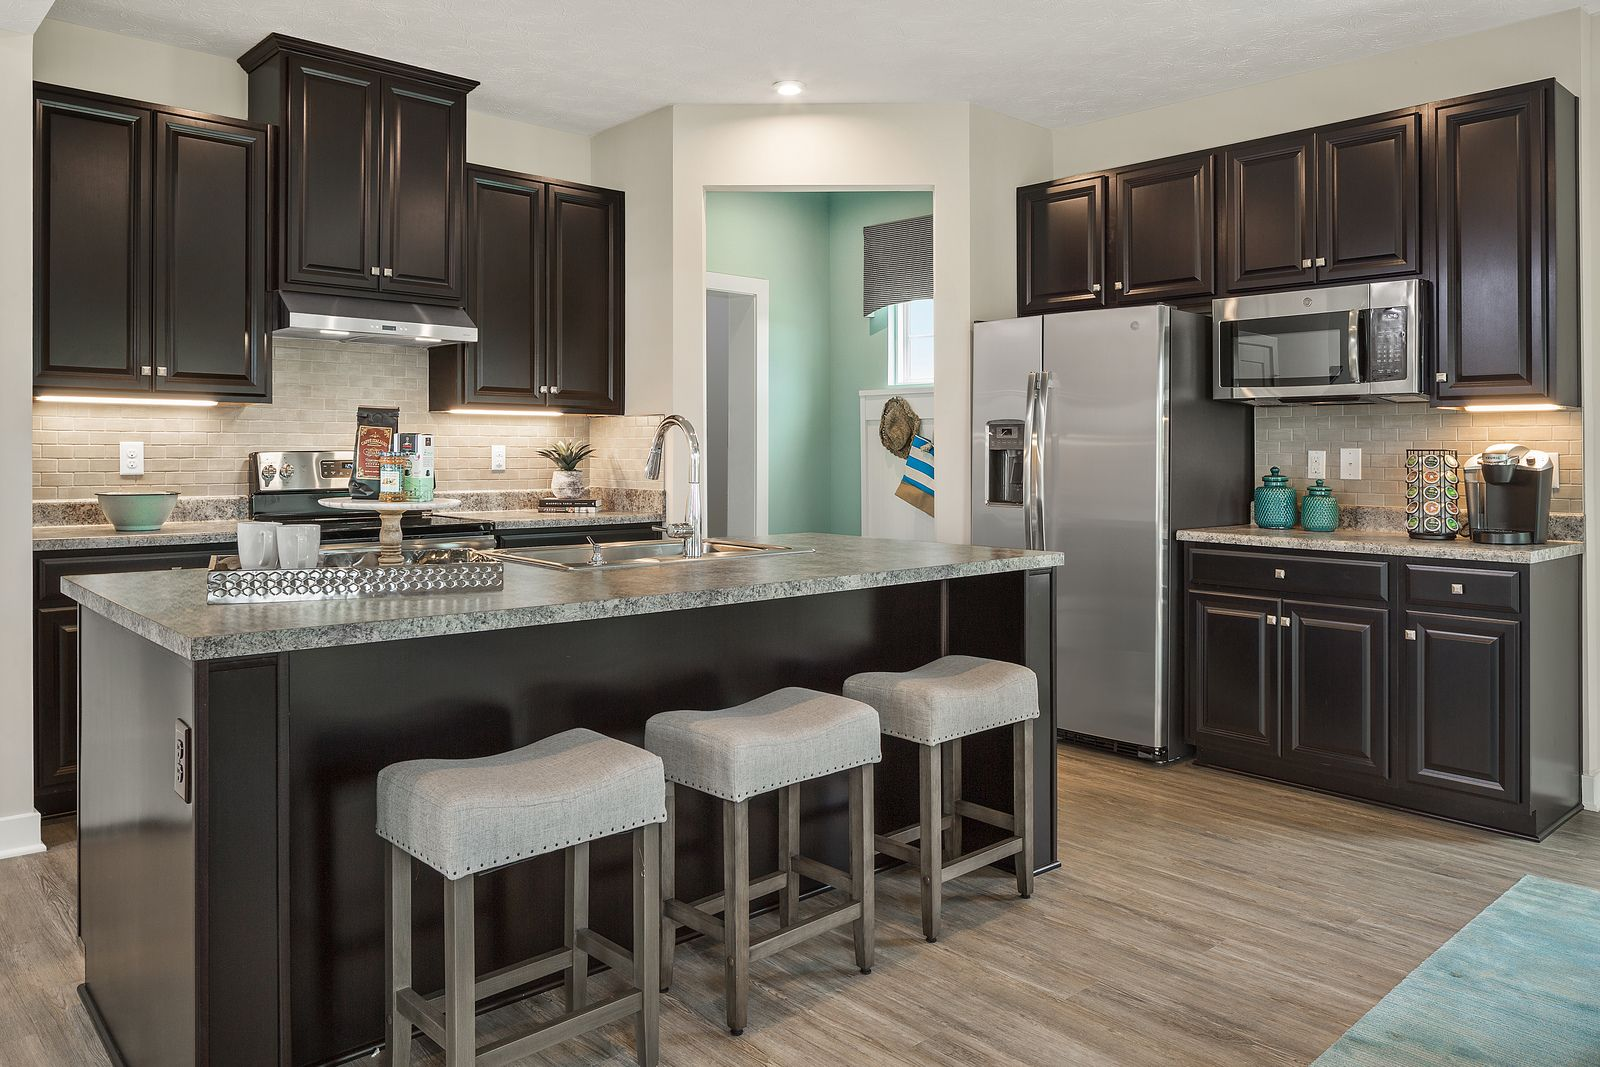 Kitchen featured in the Allegheny By HeartlandHomes in Morgantown, WV